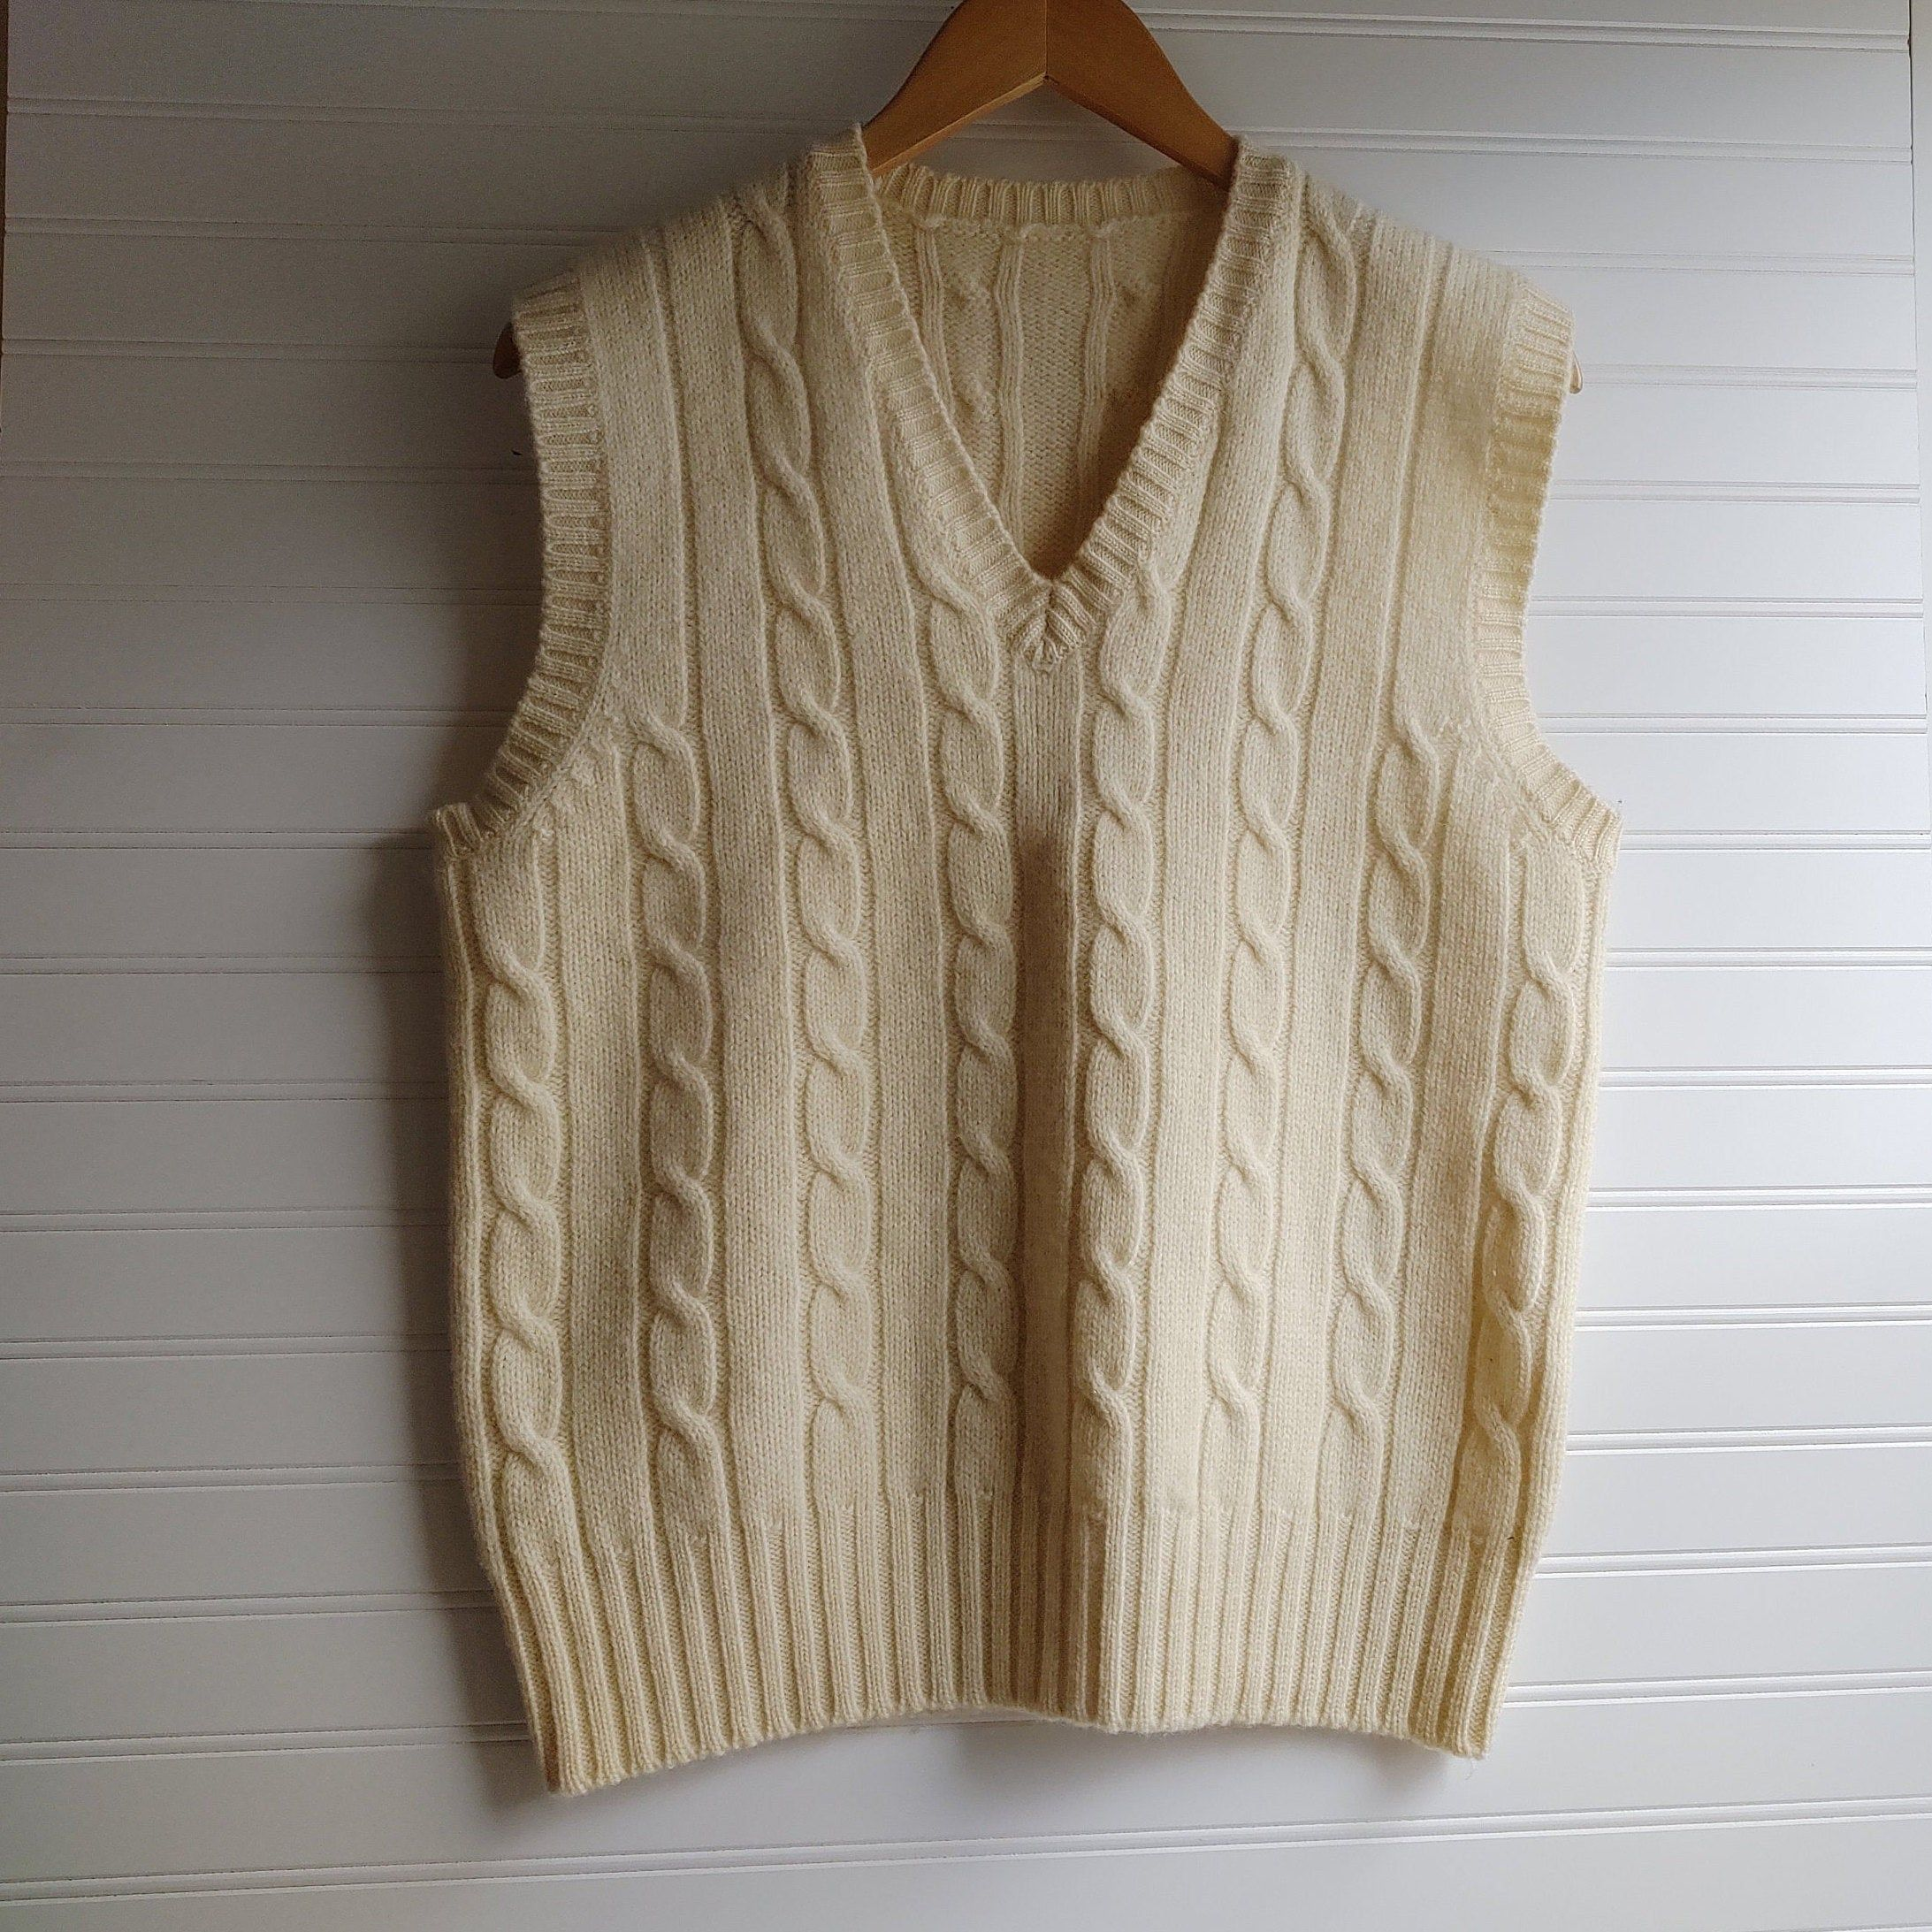 Men S Sweater Vest Medium Vintage Wool White Cableknit Pull Over V Neck Sweater Vest In 2020 Sweater Vest Outfit Women Sweater Vest Mens Sweater Vest Outfit